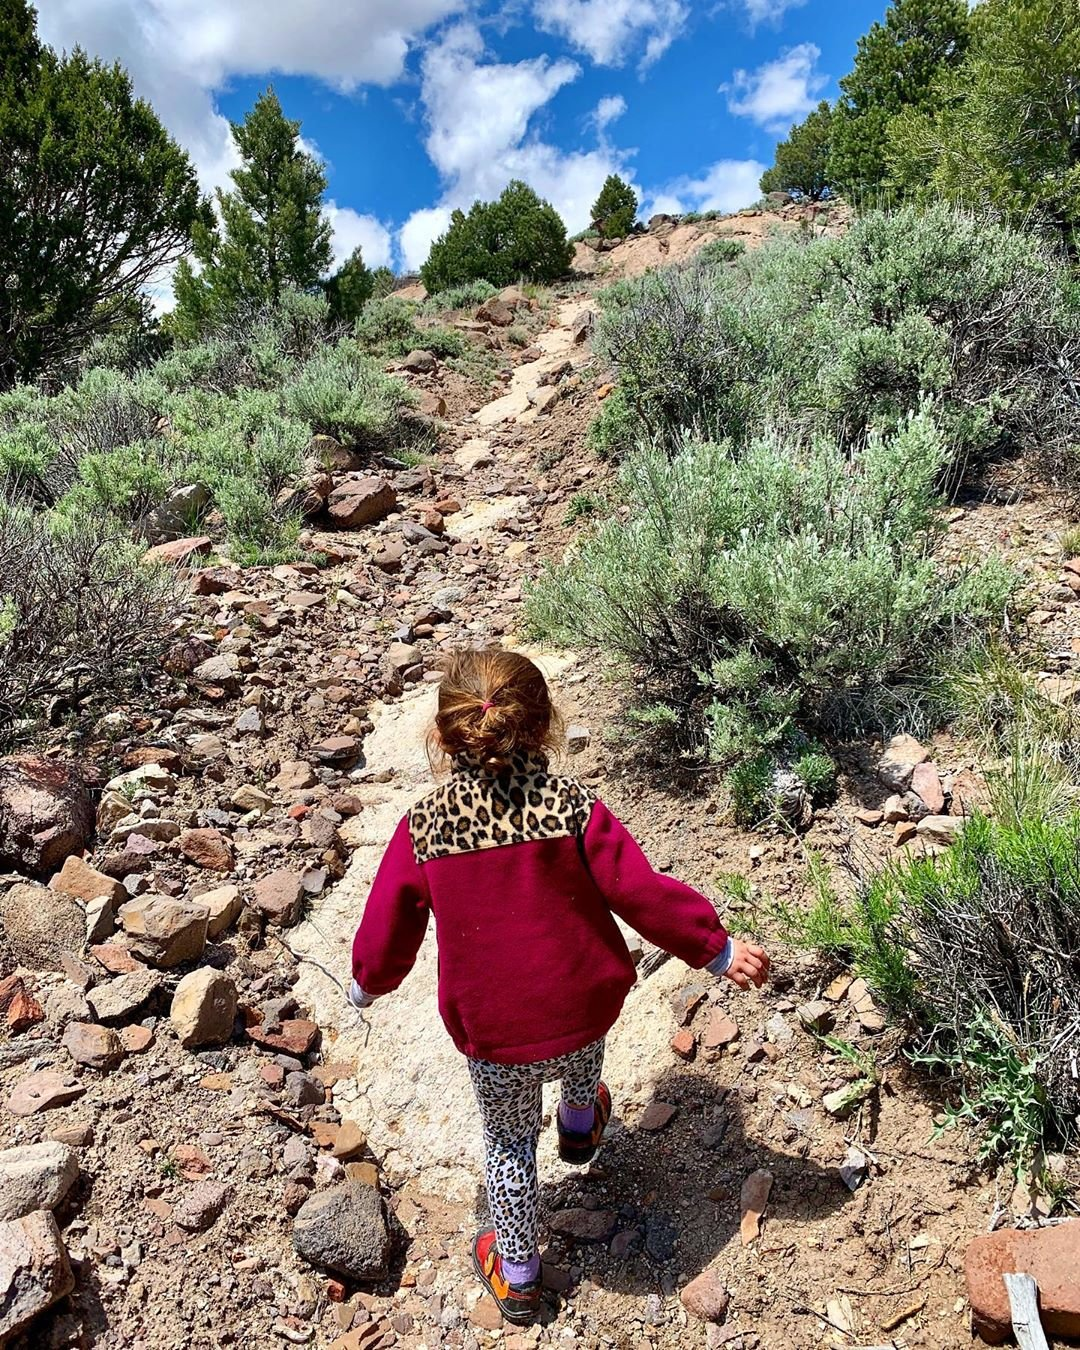 My little explorer was a trooper, until she wasn't. Just one little meltdown, I cal it a successful hike! Momma only had to carry her for 1.5 miles. She did about 3 all by herself!  #naturephotography #landscapephotography #naturelovers #nature_photo #exploring #adventure #minime #littleexllorer #hiking #littlehiker #getoutside #kidsexploring #nevada #travel #adventure #travelnevada #littleadventures_bigpictures #realkidsplayoutside